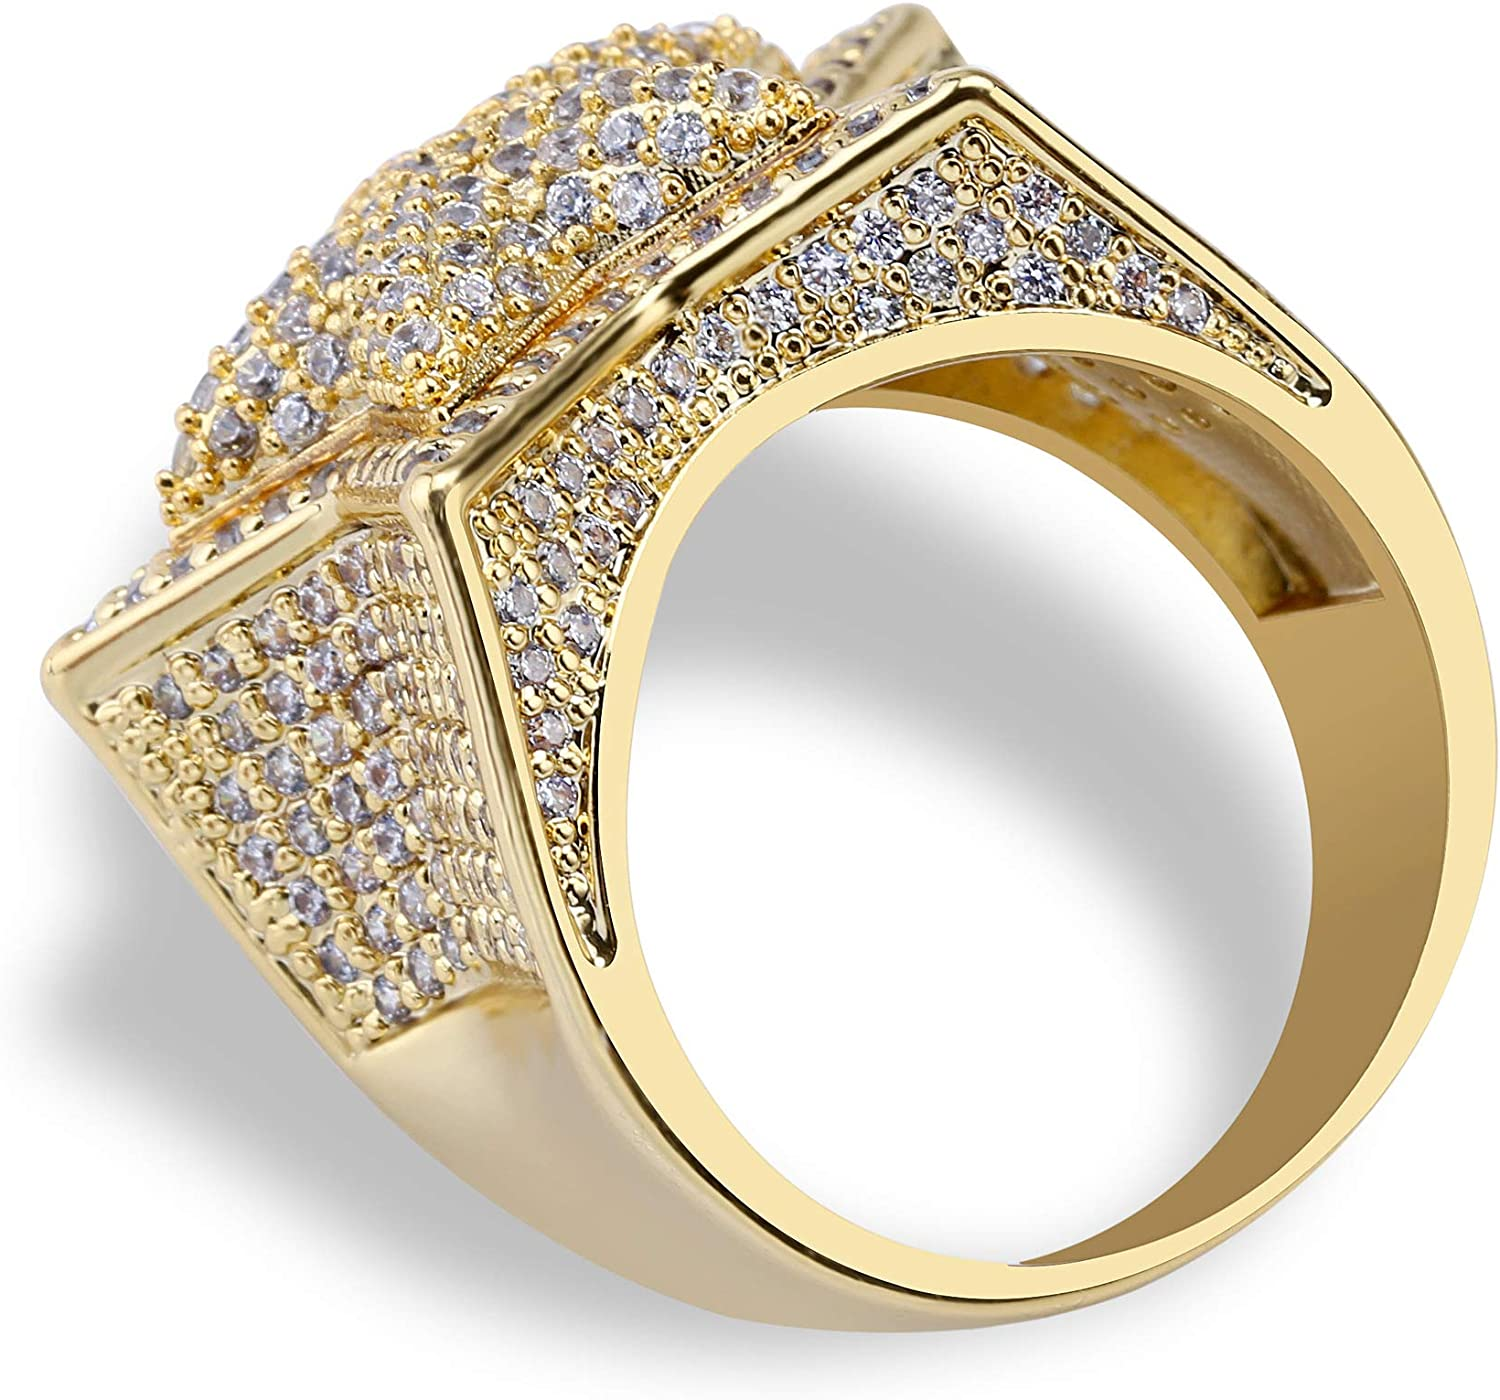 Moca Jewellery Iced Out Pentagram 3D Ring 18K Gold Plated Bling CZ Simulated Diamond Hip Hop Ring for Men